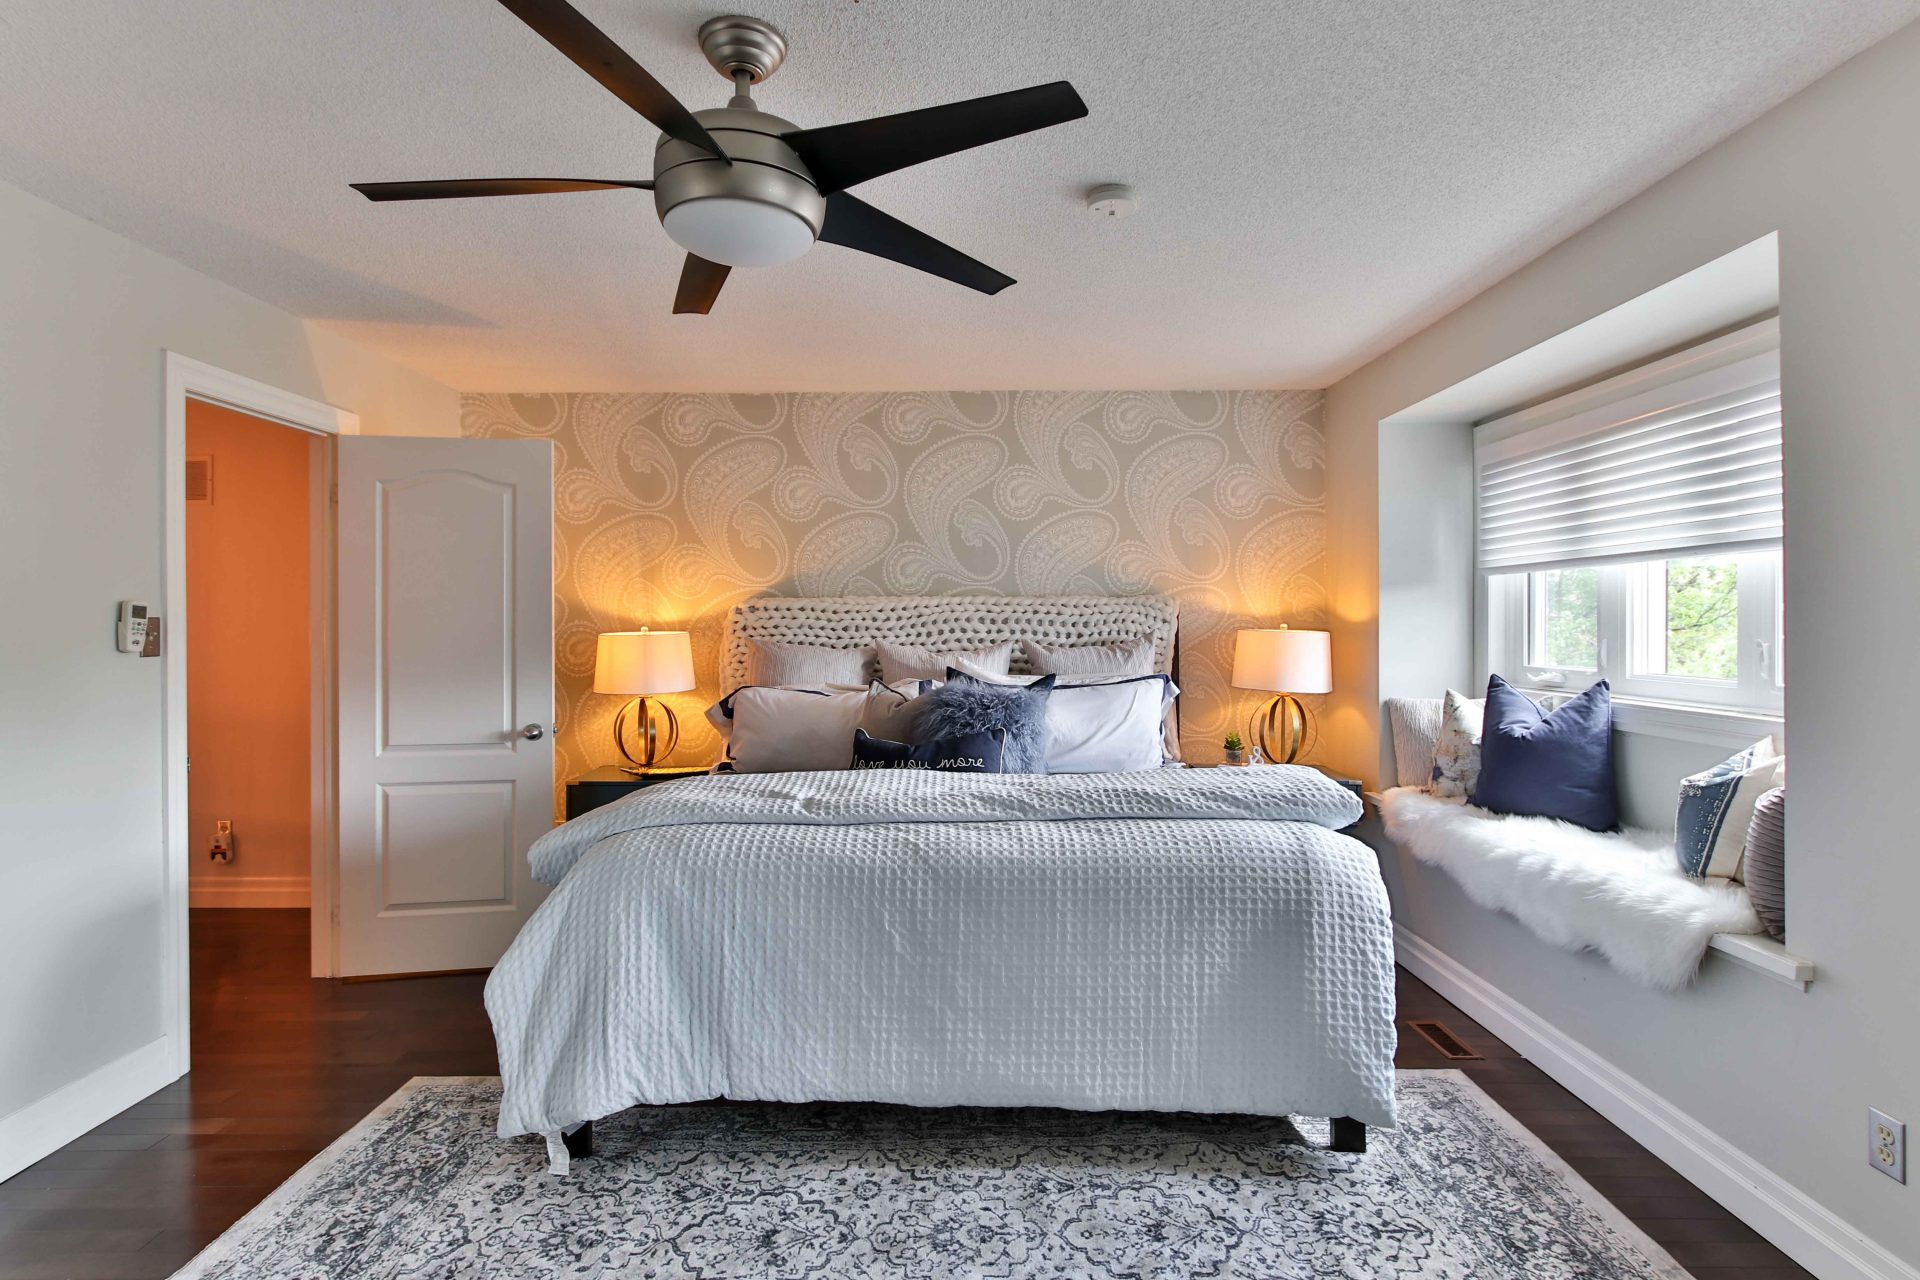 pic of bedroom with ceiling fan for a blog about how to get your home cooler